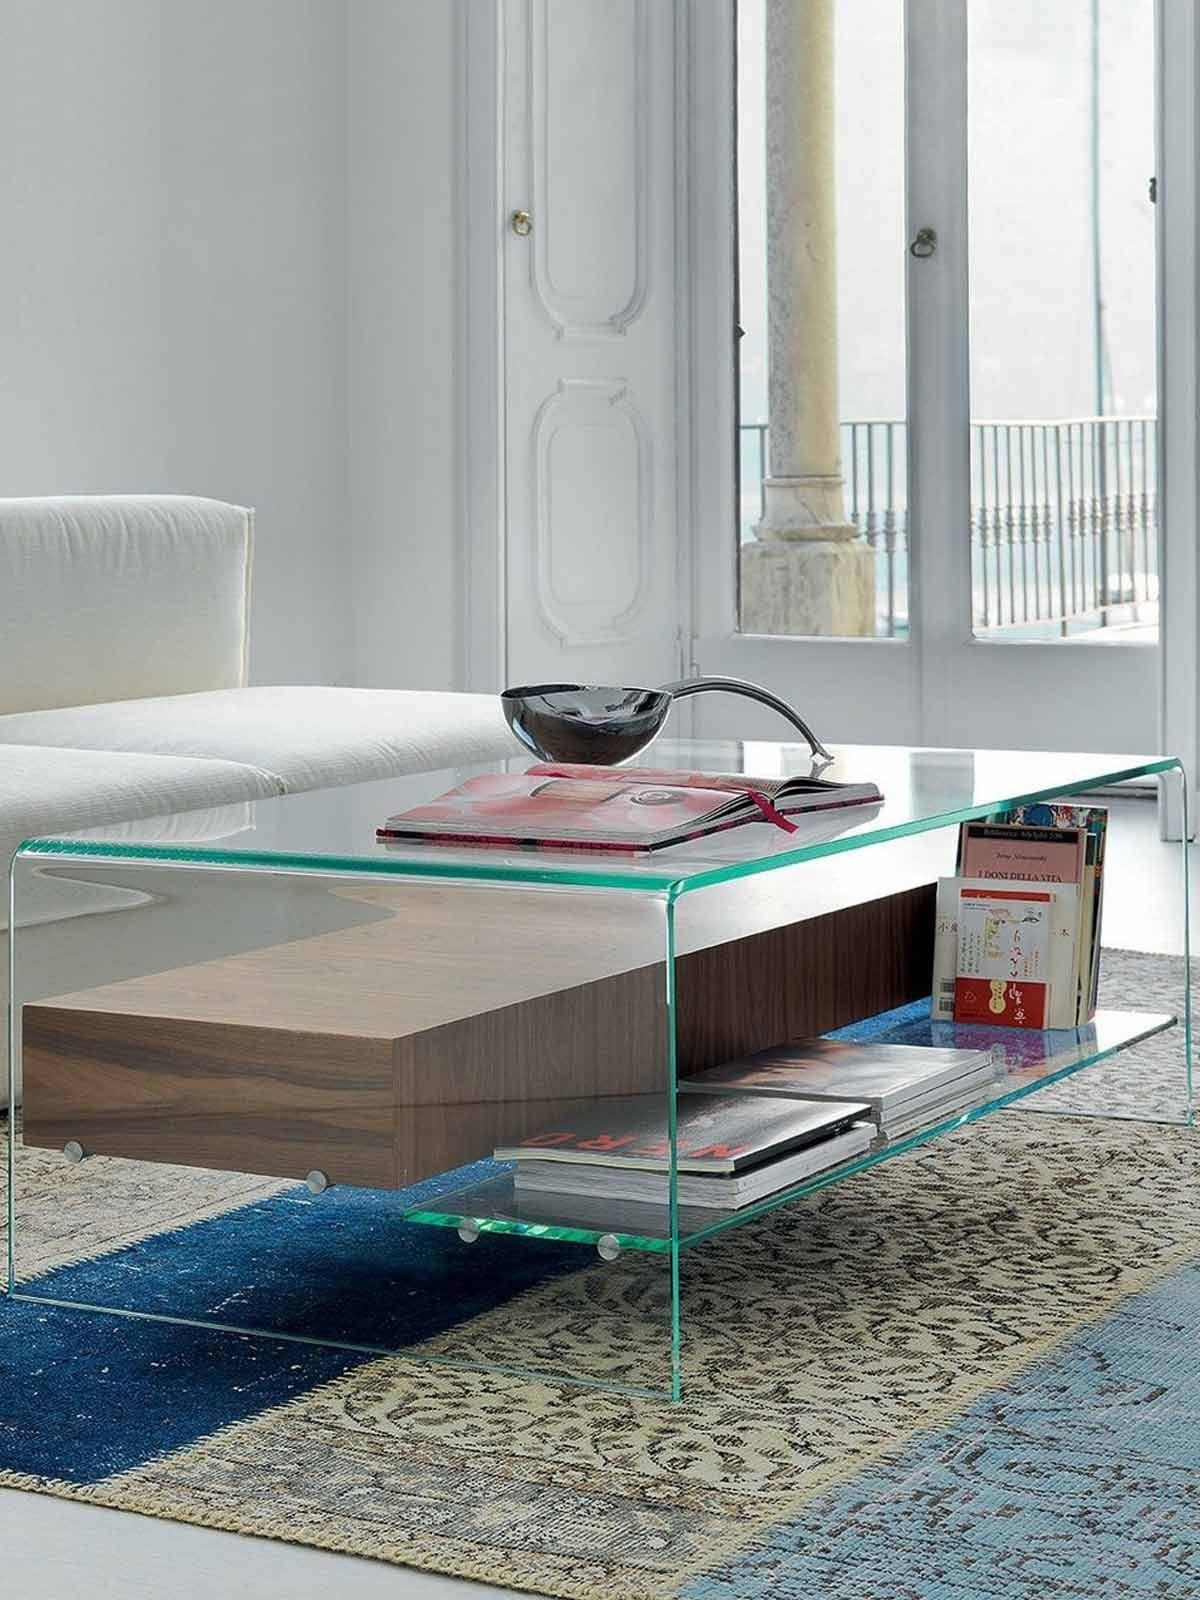 Bridge Glass And Wood Coffee Table With Drawer And Shelfsovet in Glass Coffee Table With Shelf (Image 1 of 15)